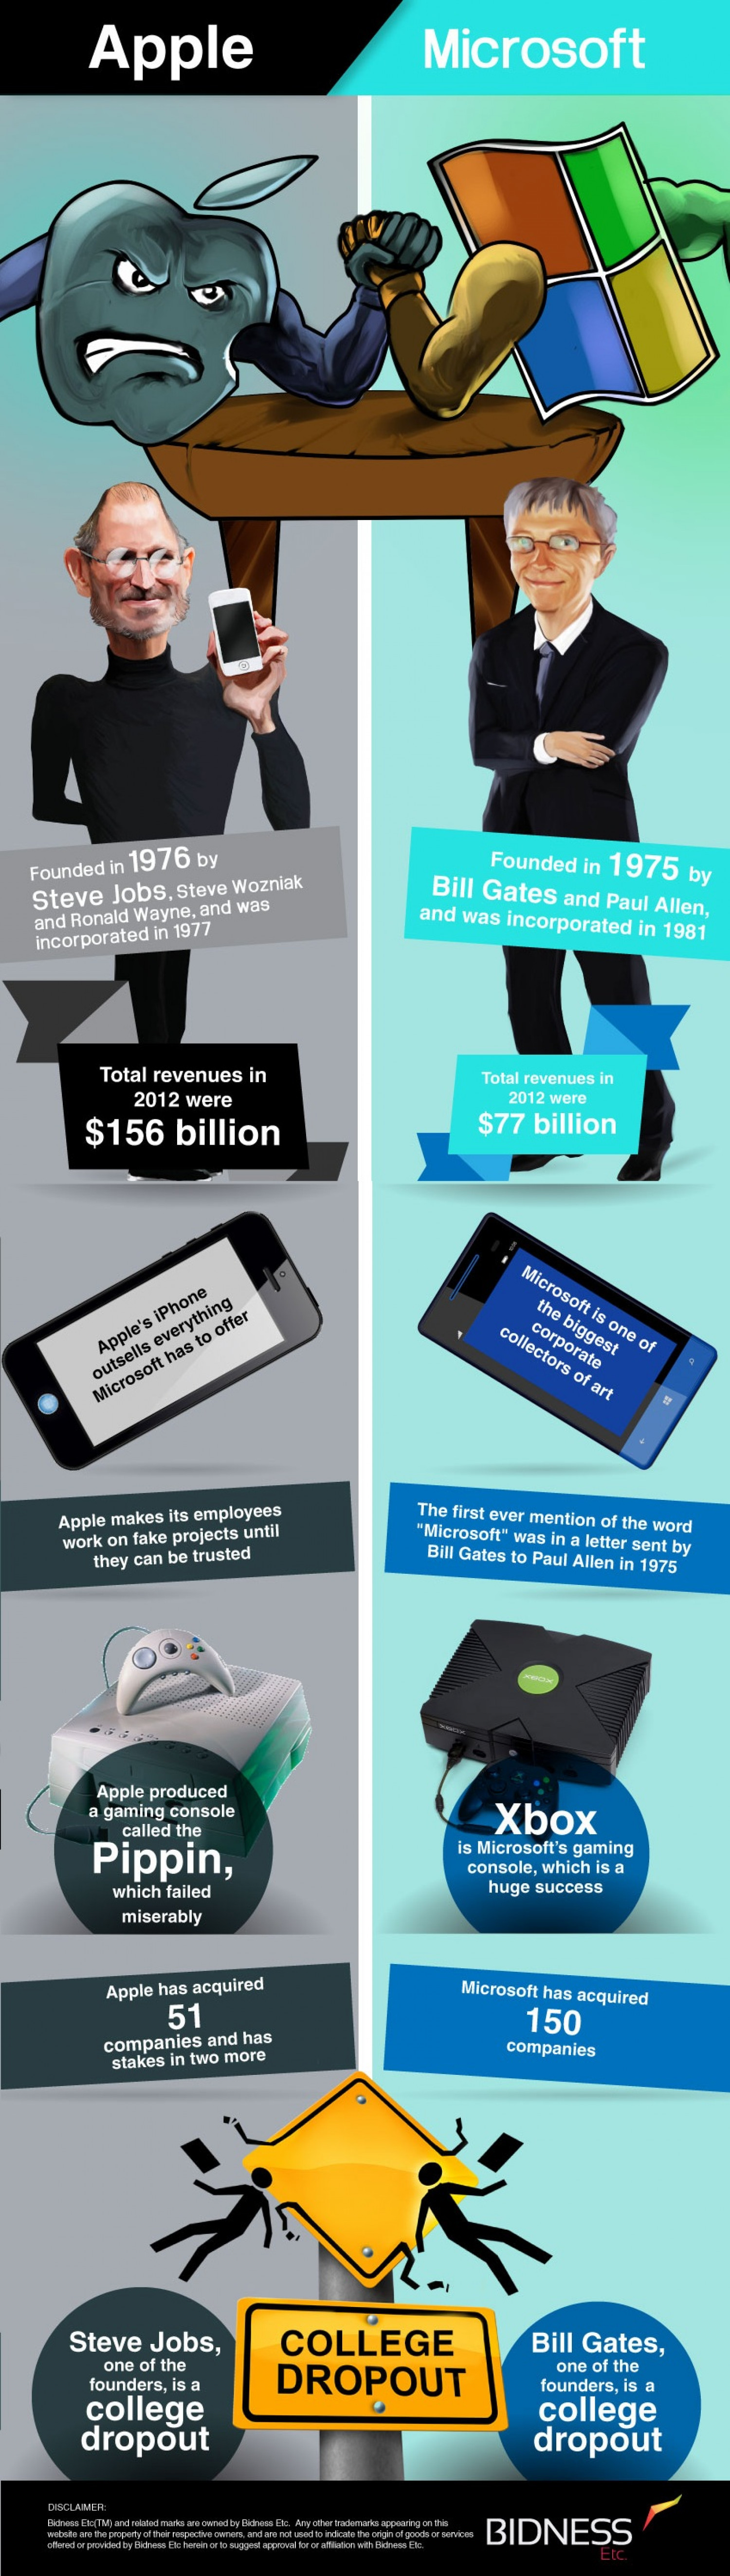 Apple vs. Microsoft Infographic